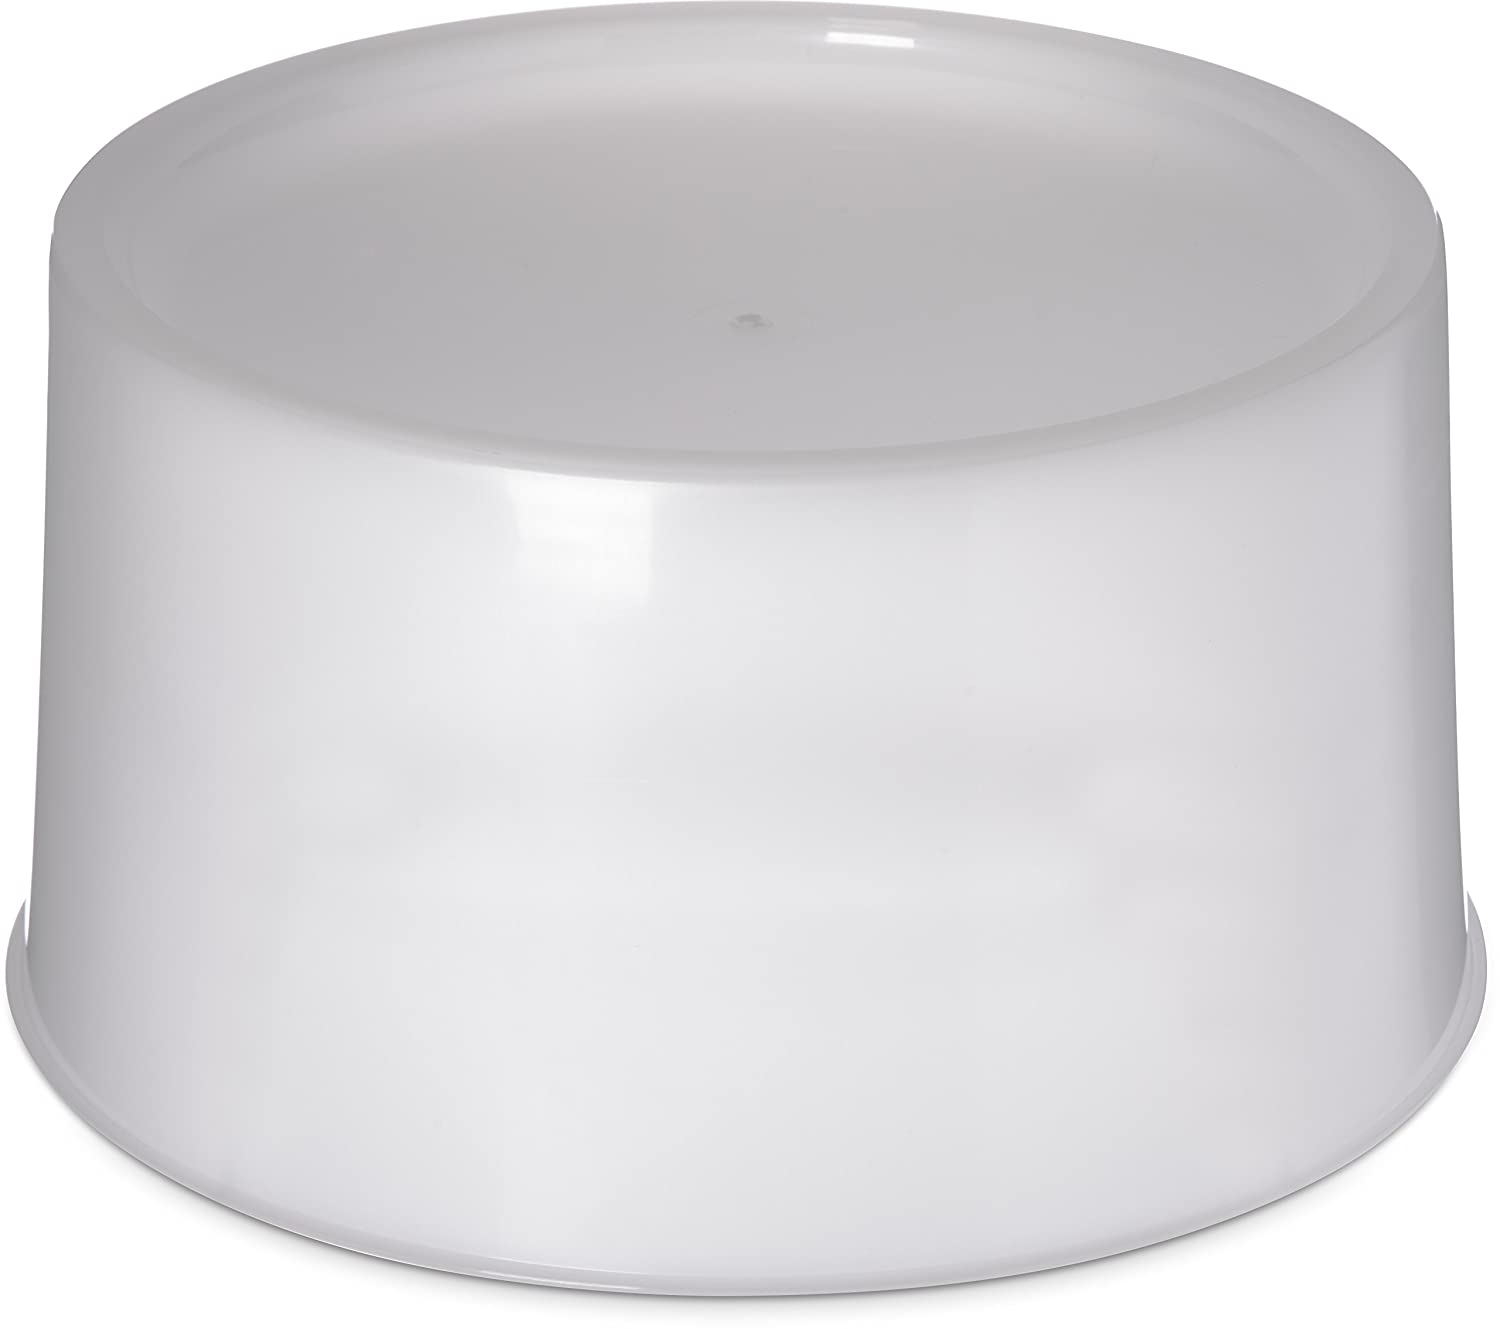 Carlisle 221102 White 12-3/16-Inch Round Dispenser